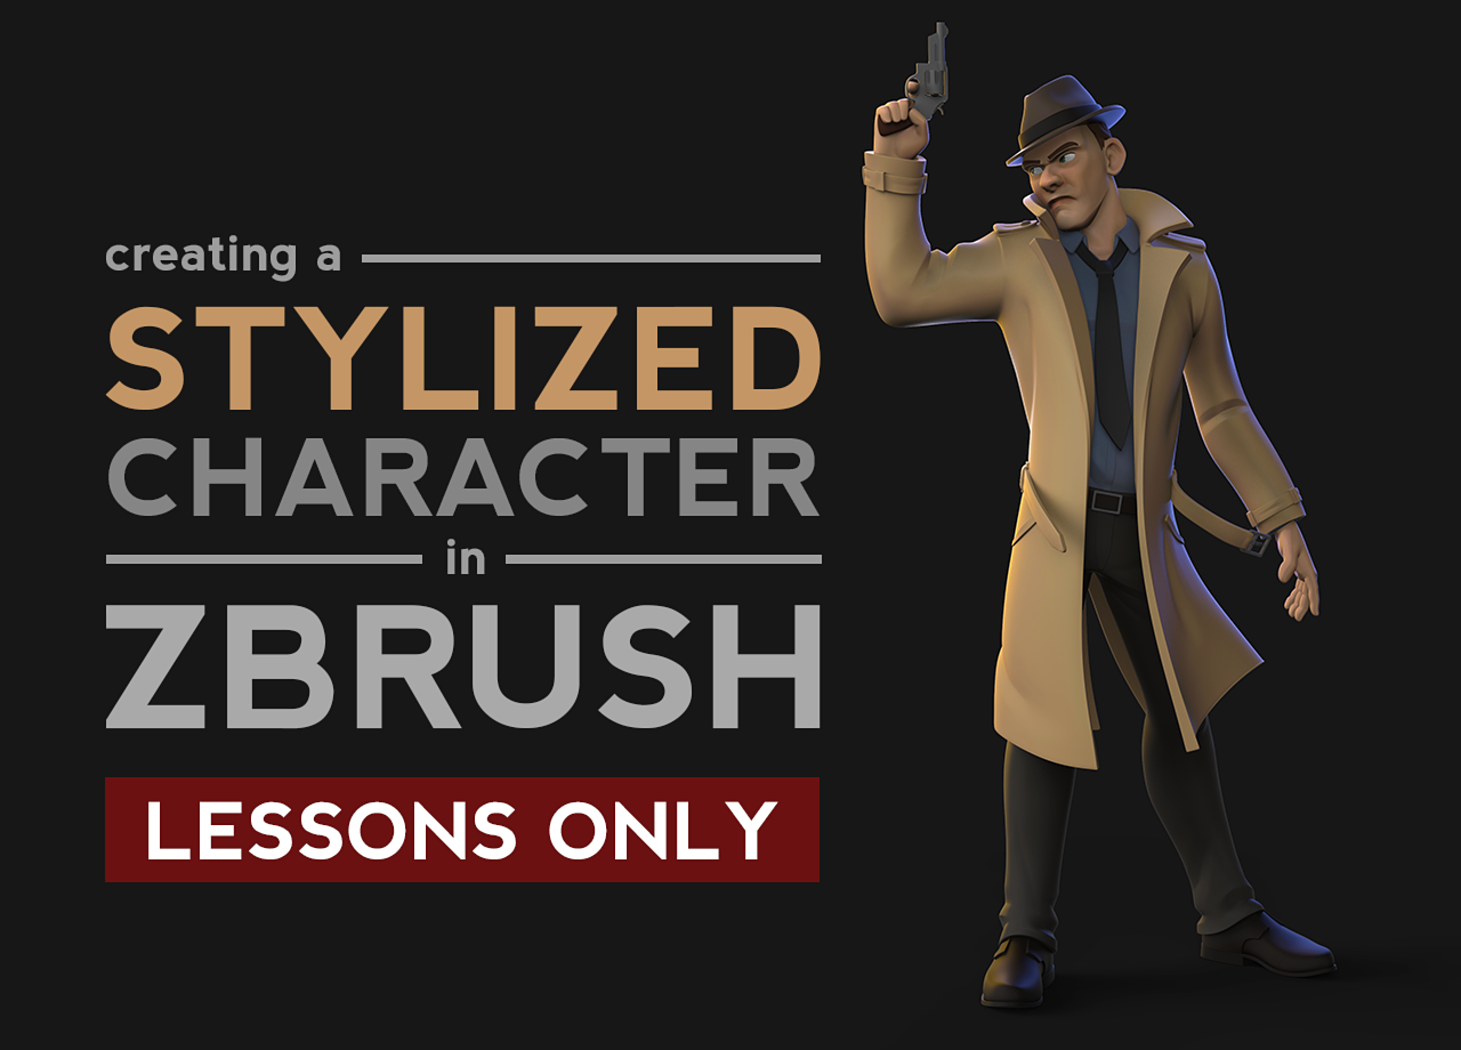 Creating a Stylized Character in ZBrush - Lessons